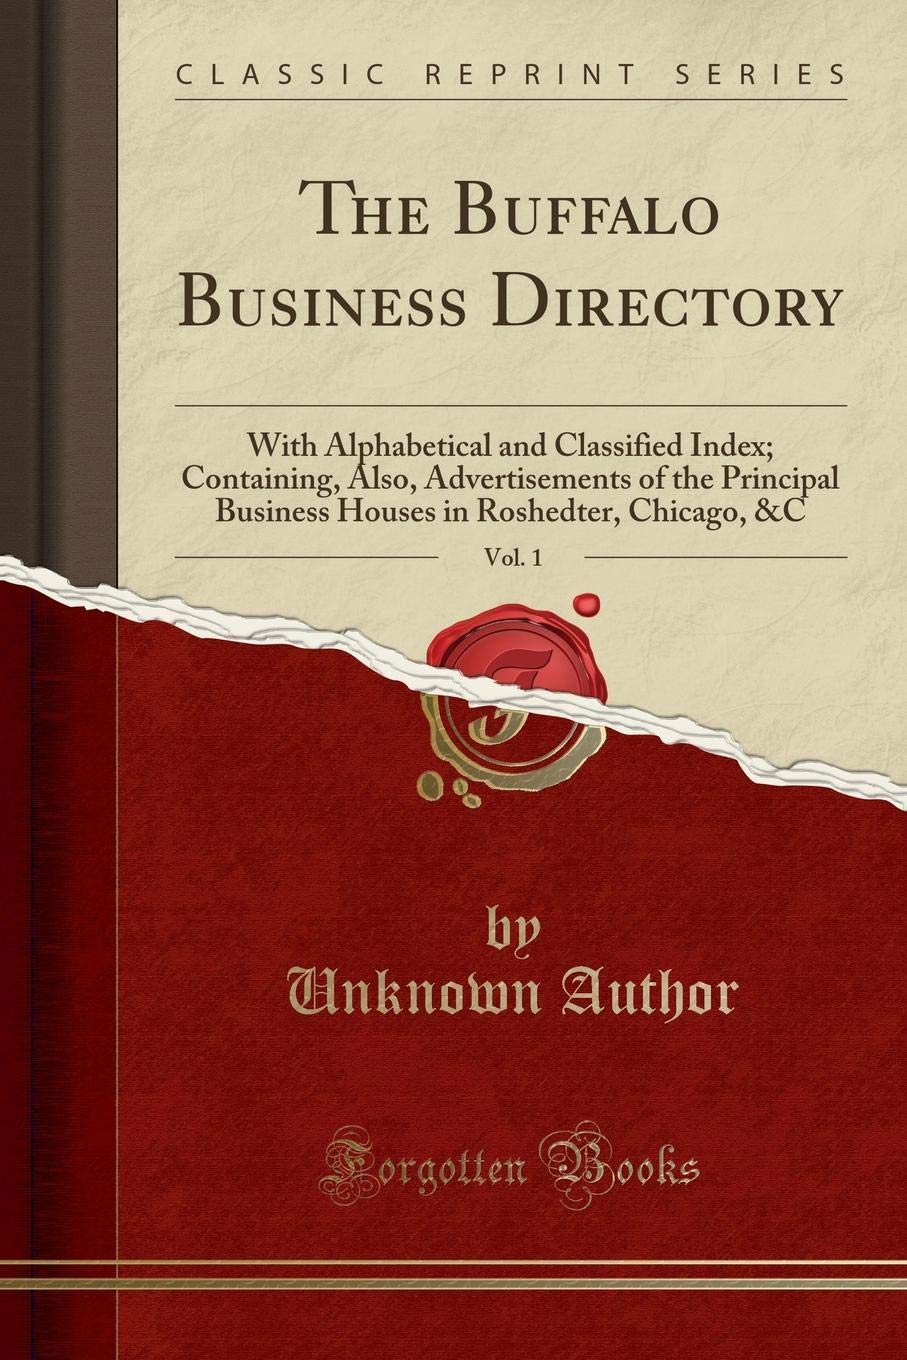 The Buffalo Business Directory, Vol. 1: With Alphabetical and Classified Index; Containing, Also, Advertisements of the Principal Business Houses in Roshedter, Chicago, &C (Classic Reprint) PDF